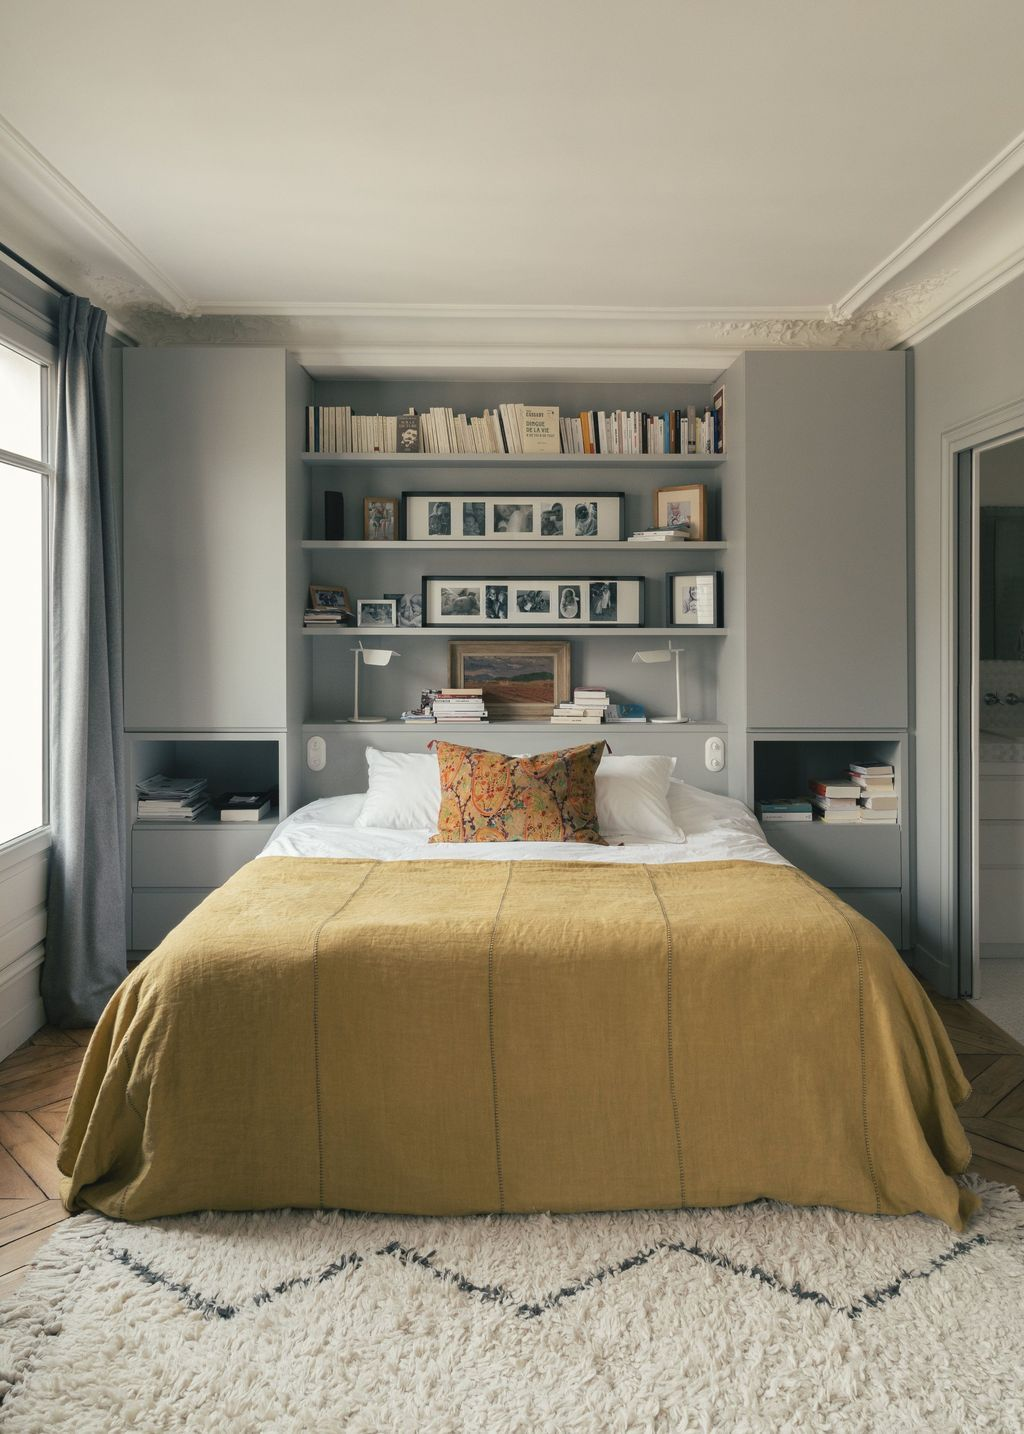 20 Newest Bedroom Storage Design Ideas For Small Space